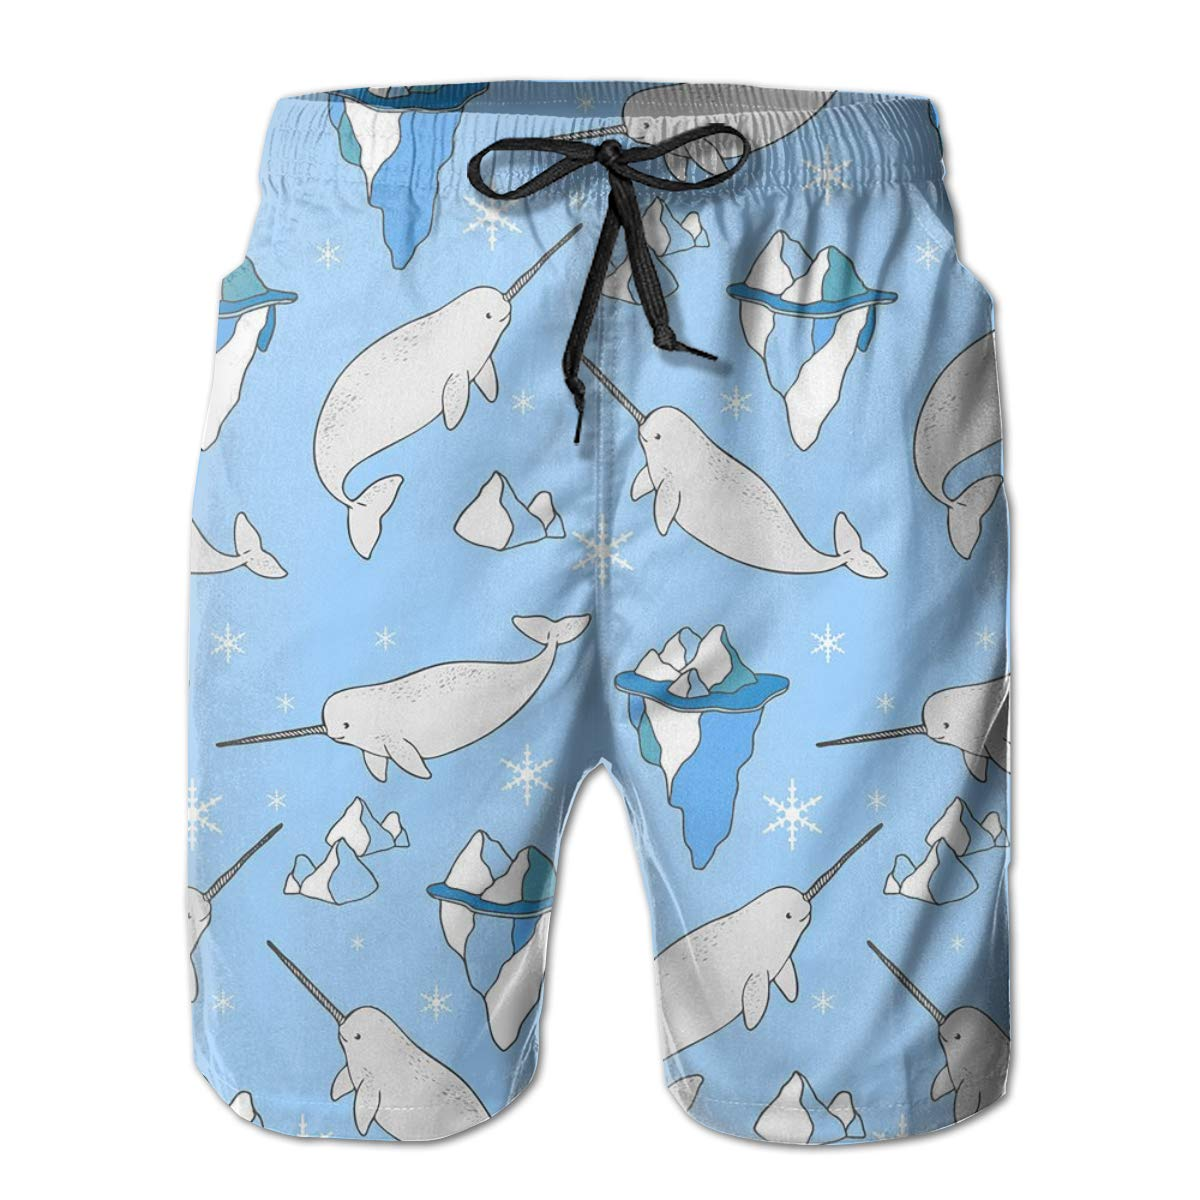 FASUWAVE Mens Swim Trunks Narwhals and Icebergs Quick Dry Beach Board Shorts with Mesh Lining